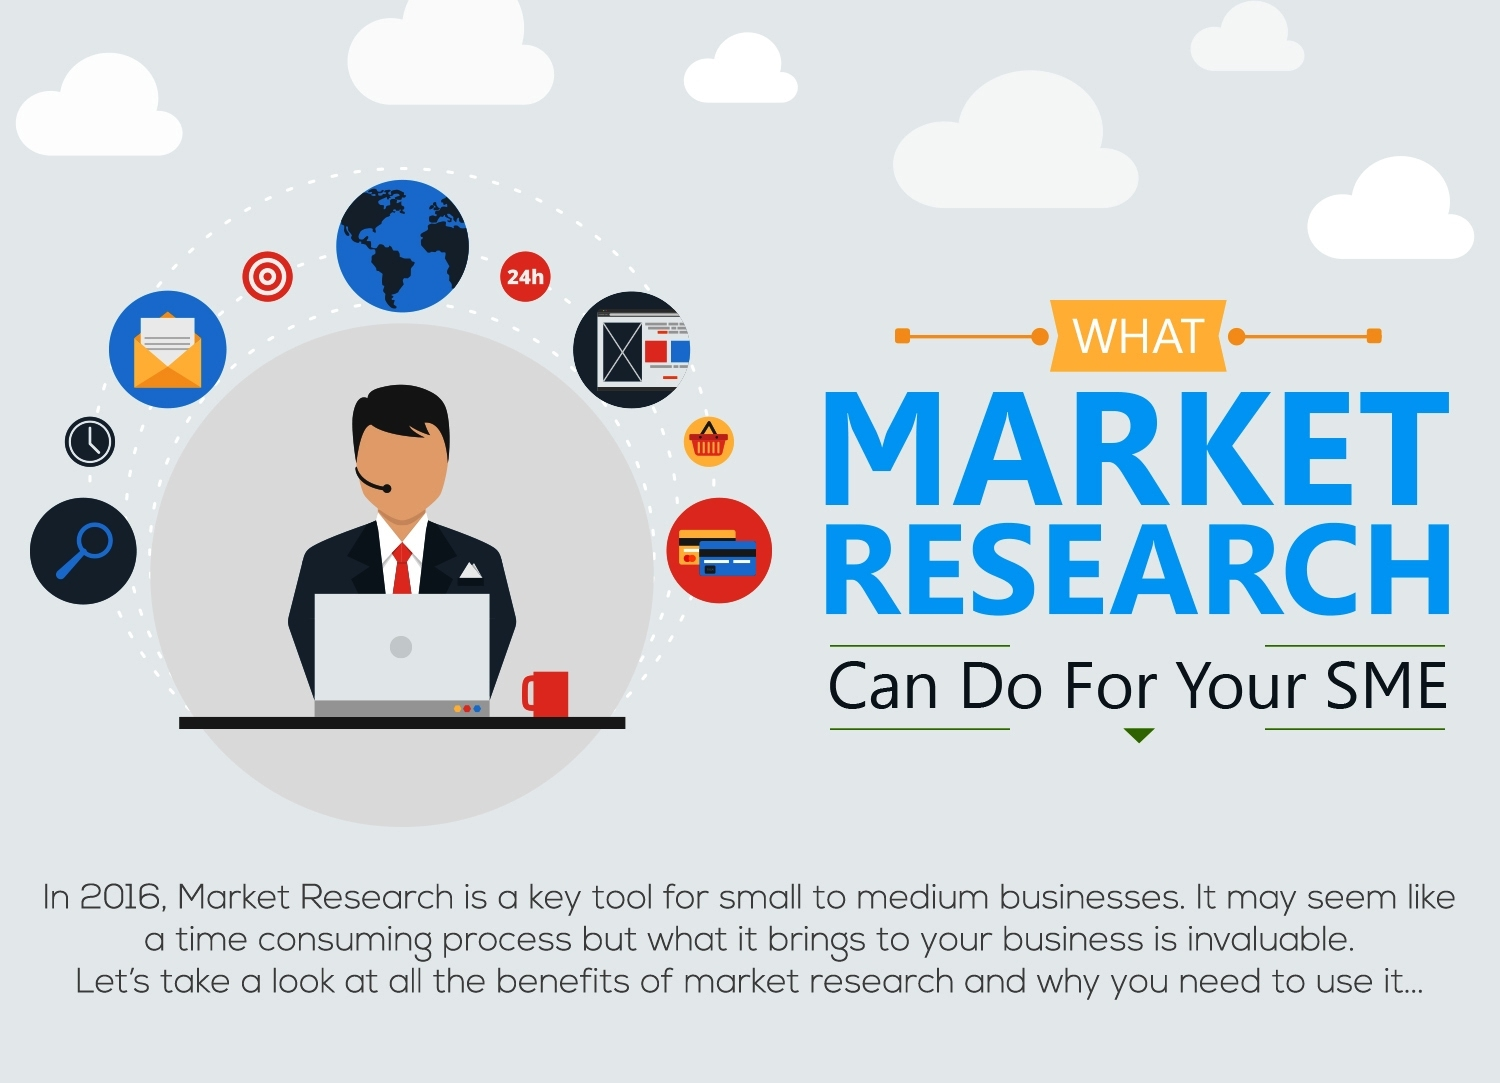 What Market Research Can Do For Your SME [Infographic] Thumb